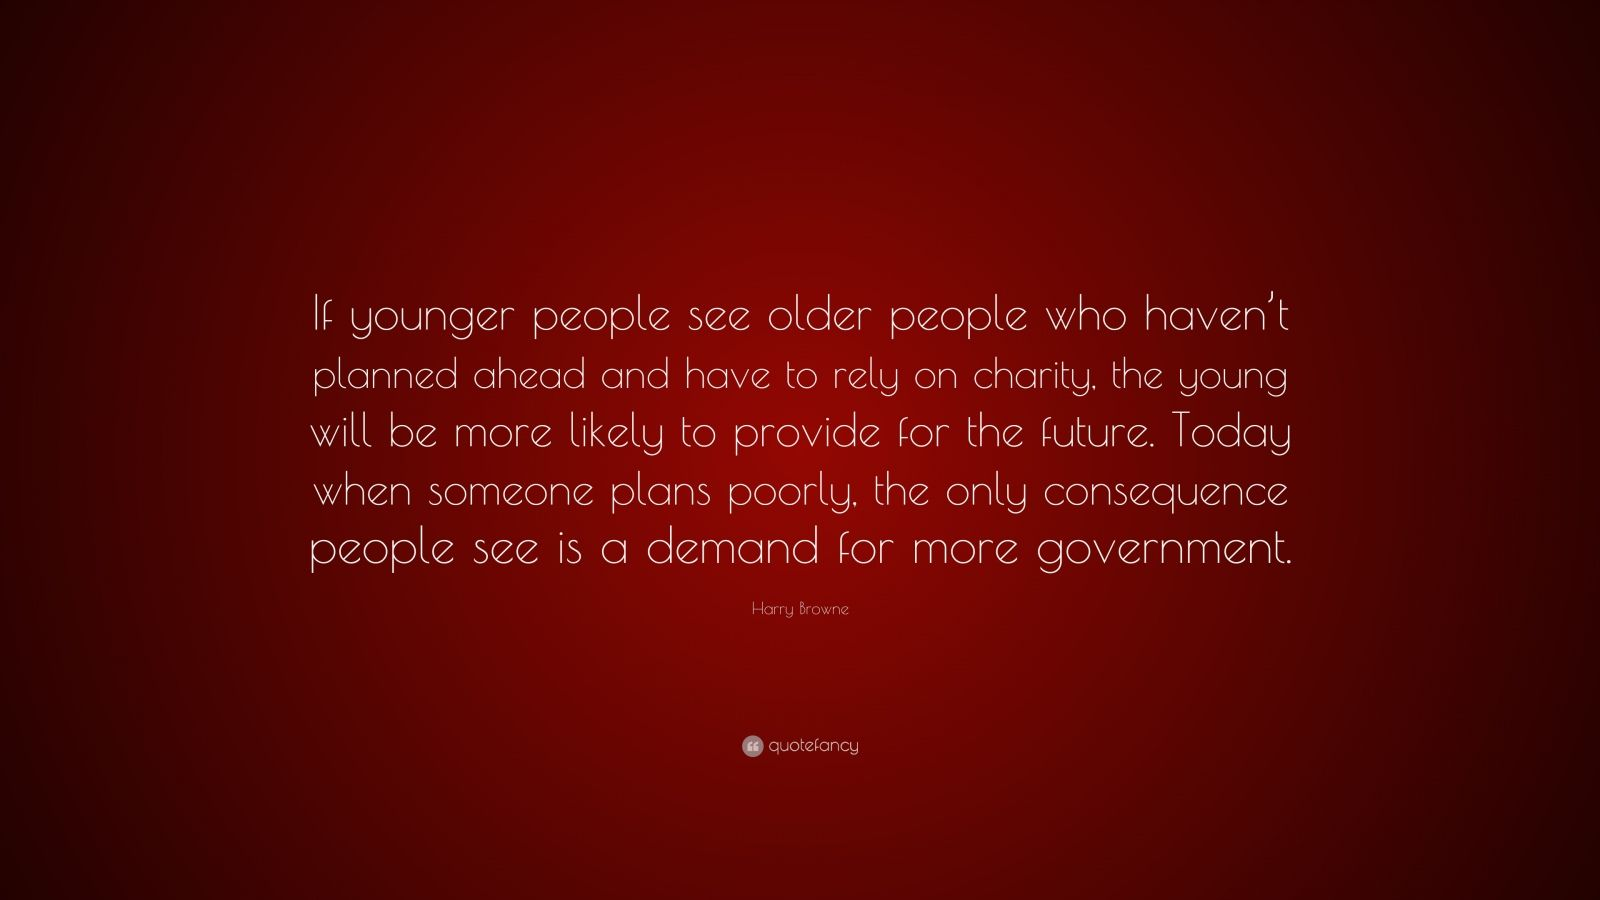 """Harry Browne Quote: """"If younger people see older people who haven't planned ahead and have to rely on charity, the young will be more likely to provide for the future. Today when someone plans poorly, the only consequence people see is a demand for more government."""""""